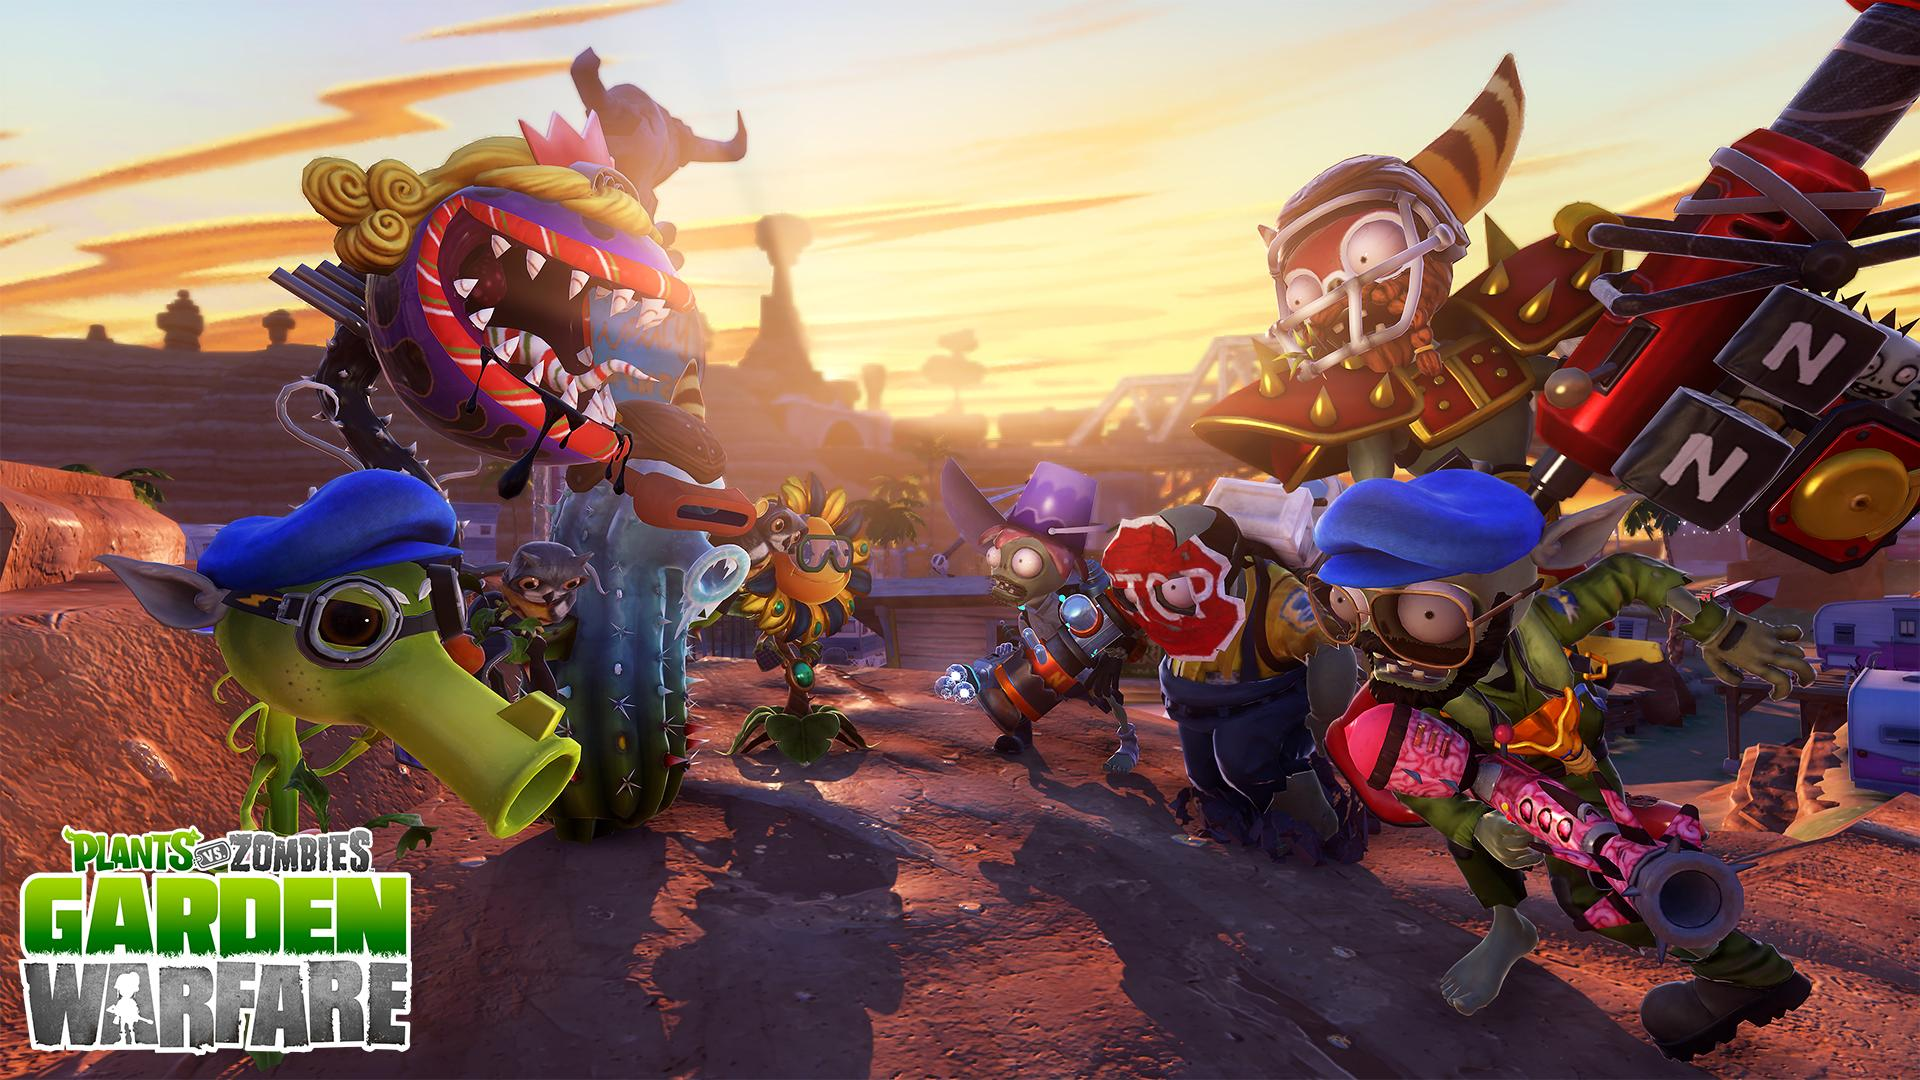 Plants Vs Zombies Garden Warfare Comes To Playstation In August Digital Trends